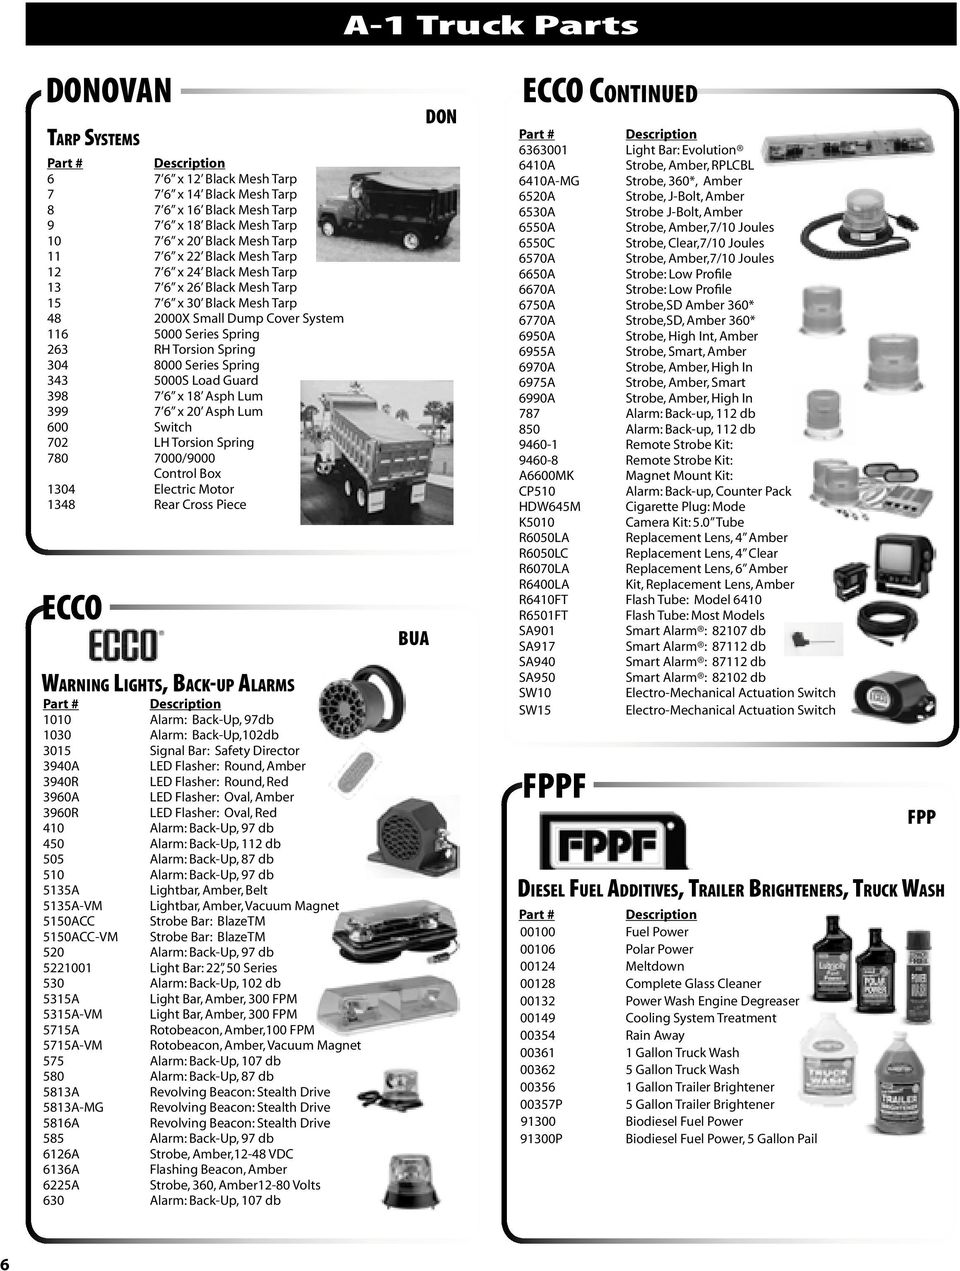 a-1 truck parts a-1 truck speciality parts book index